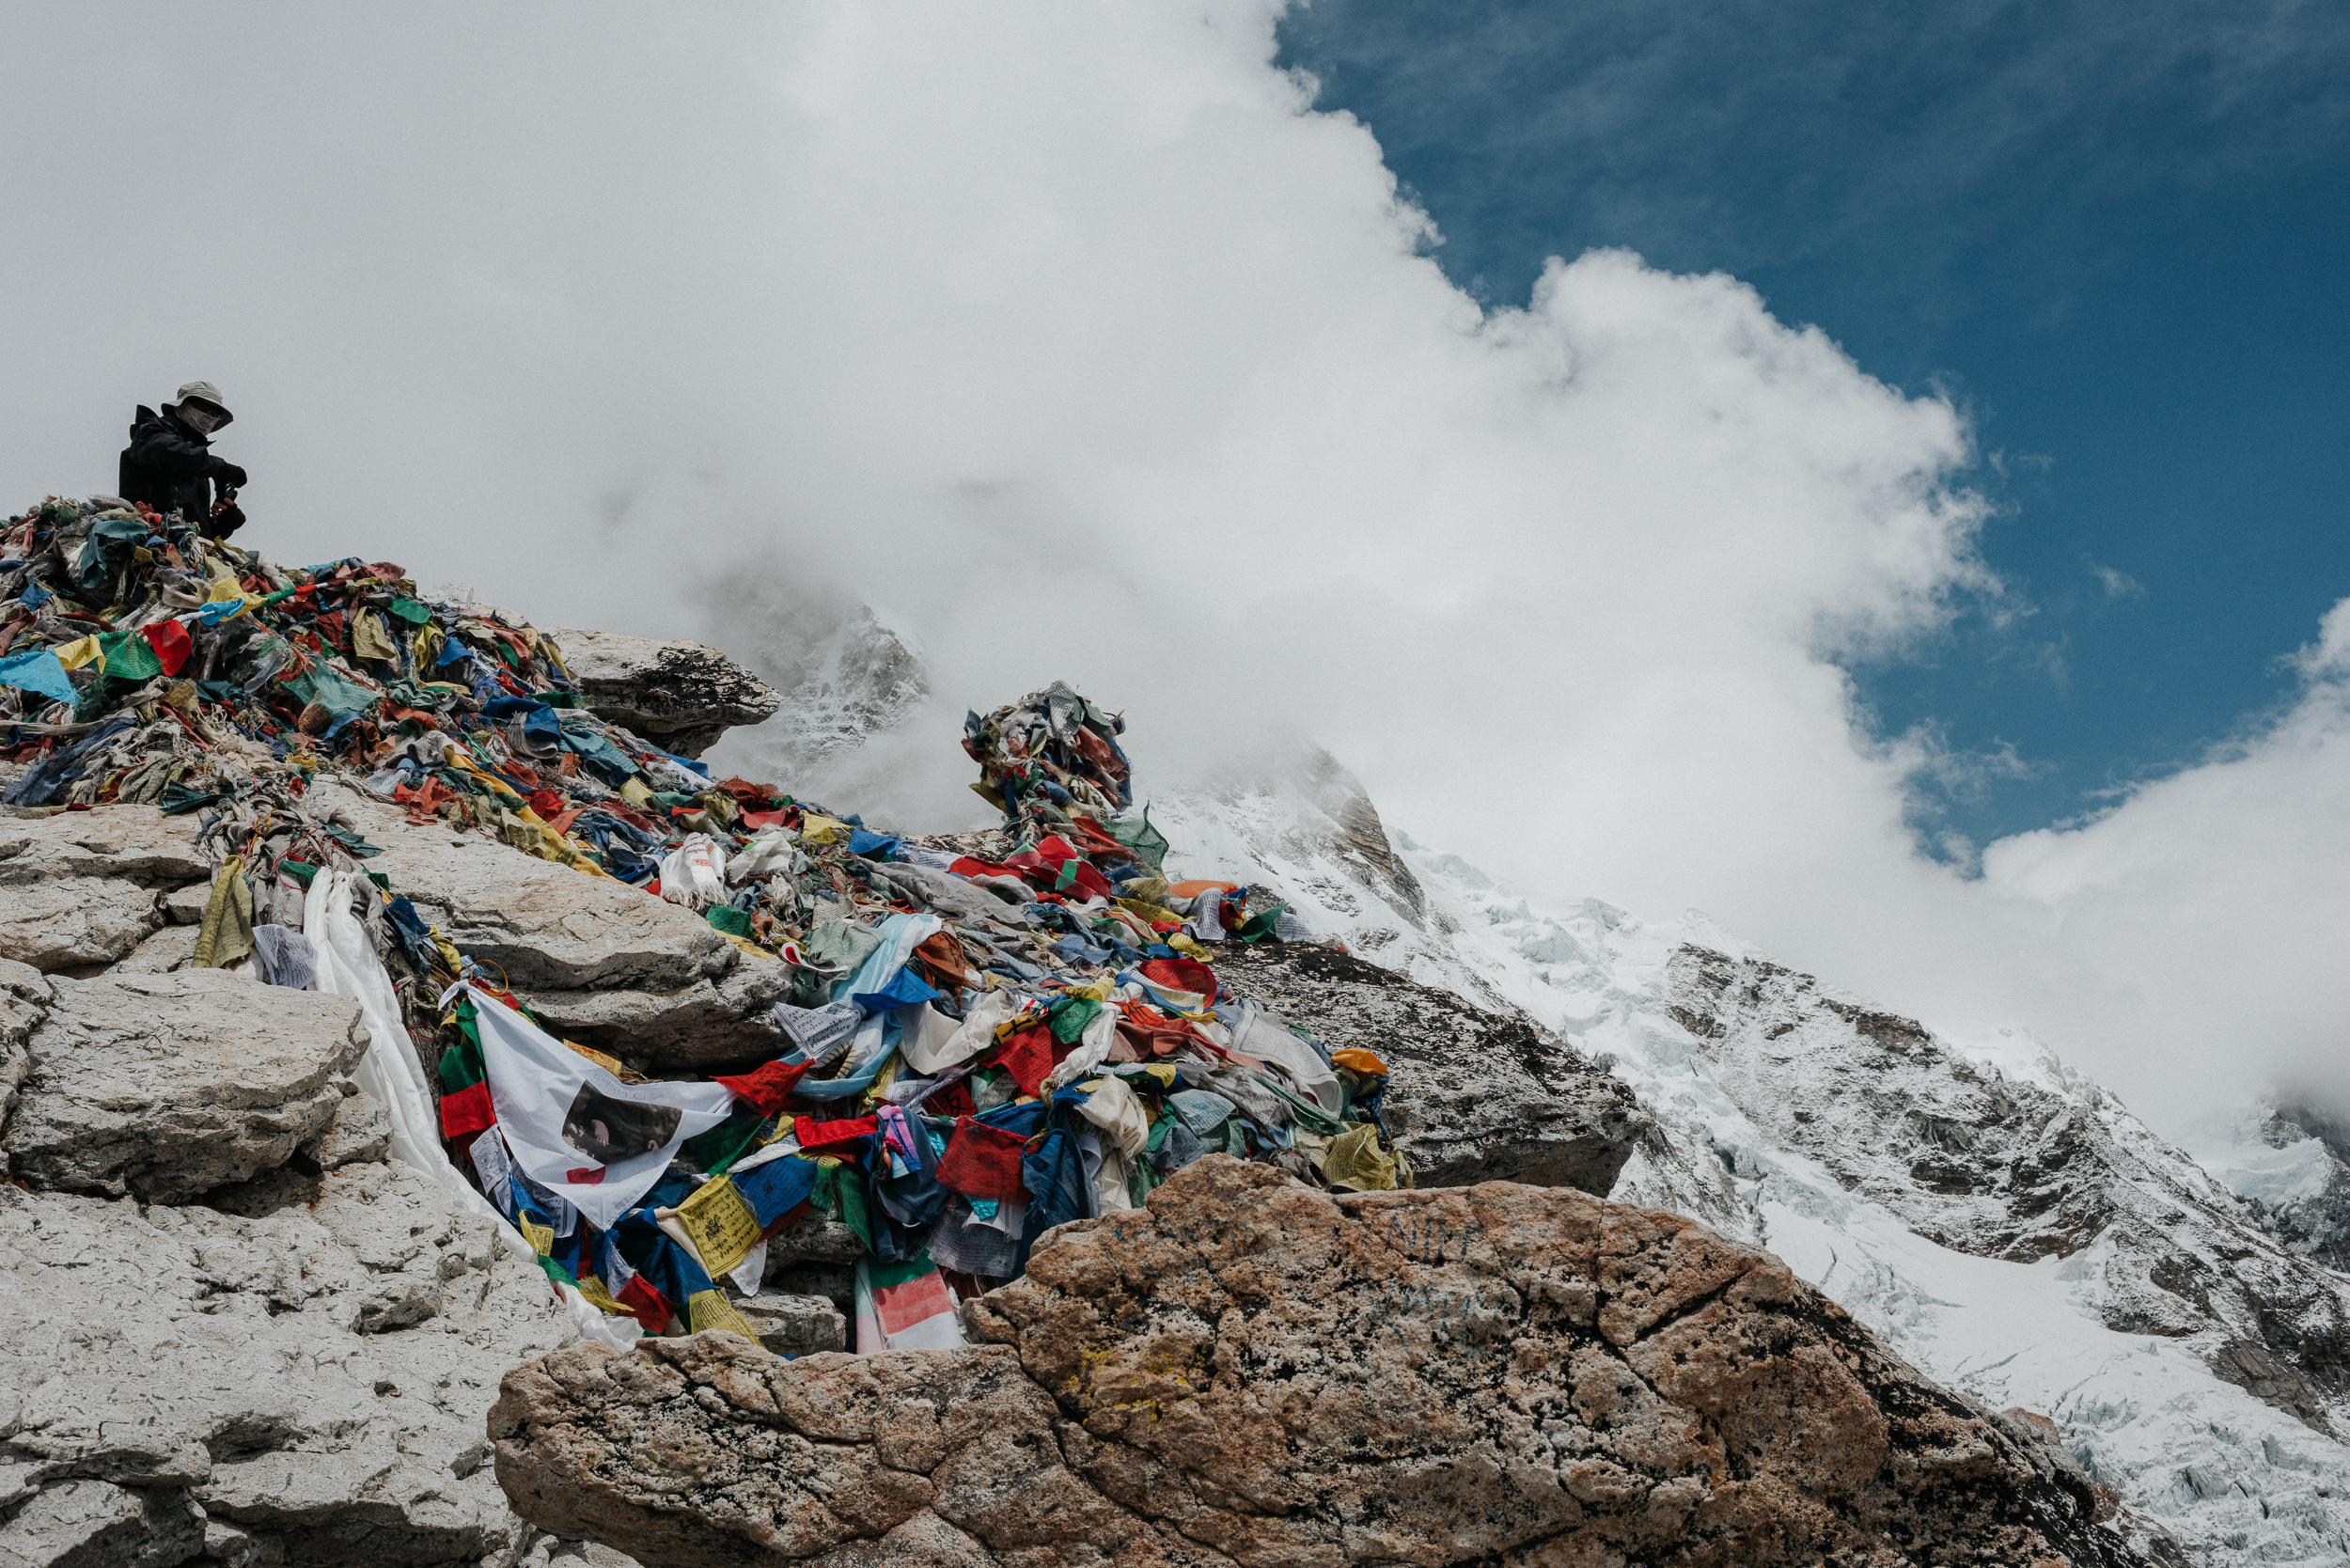 Kala Pattar Summit covered in prayer flags.